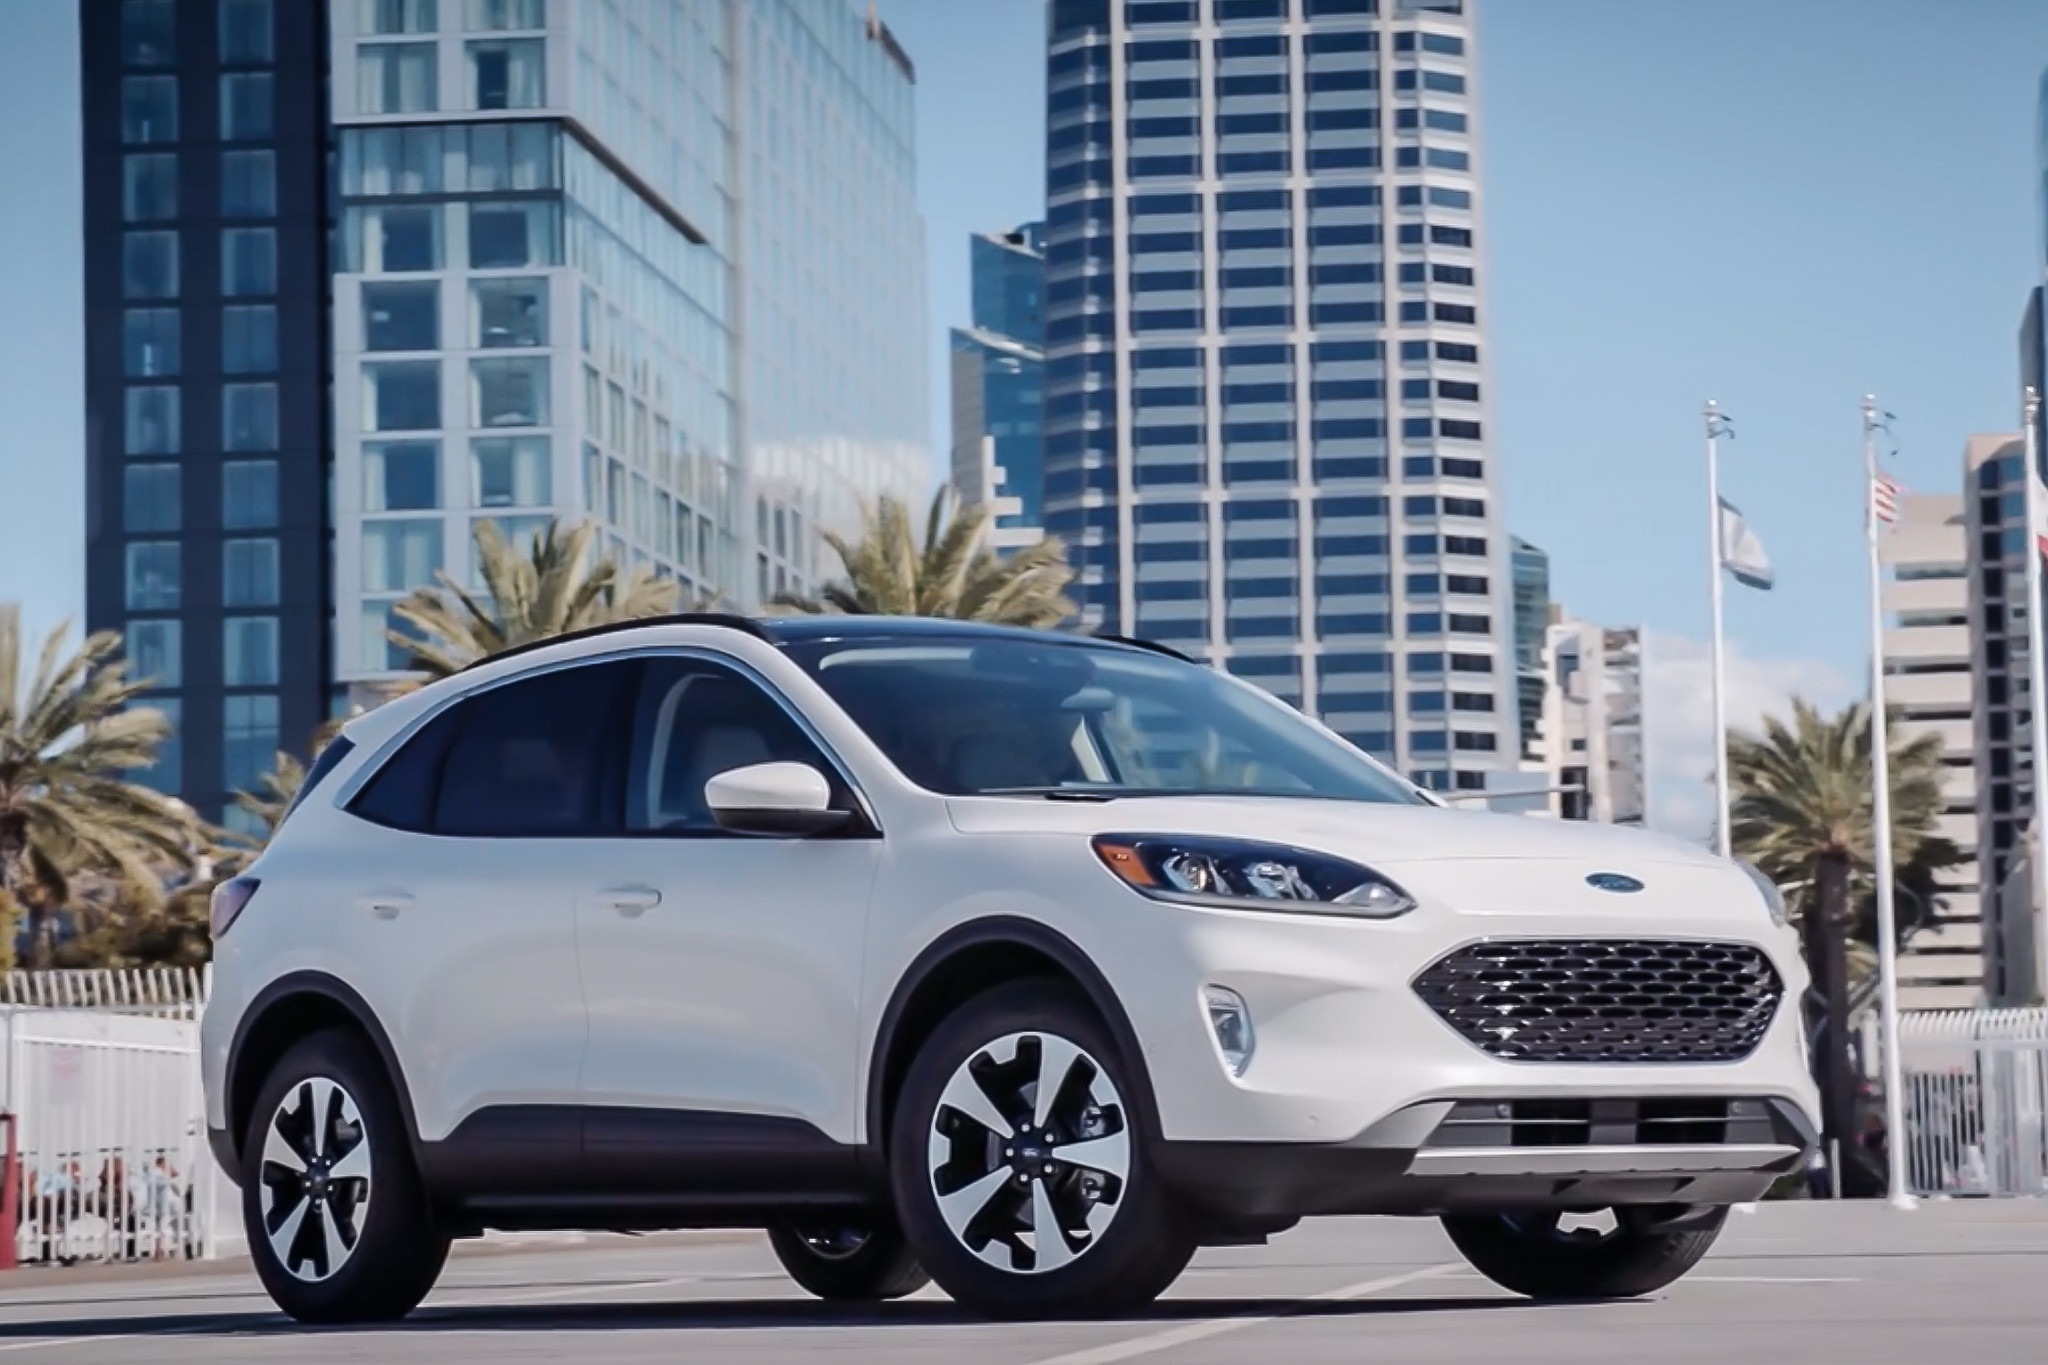 2020 Ford Escape Hybrid Review: Reaching Fuel Potential?